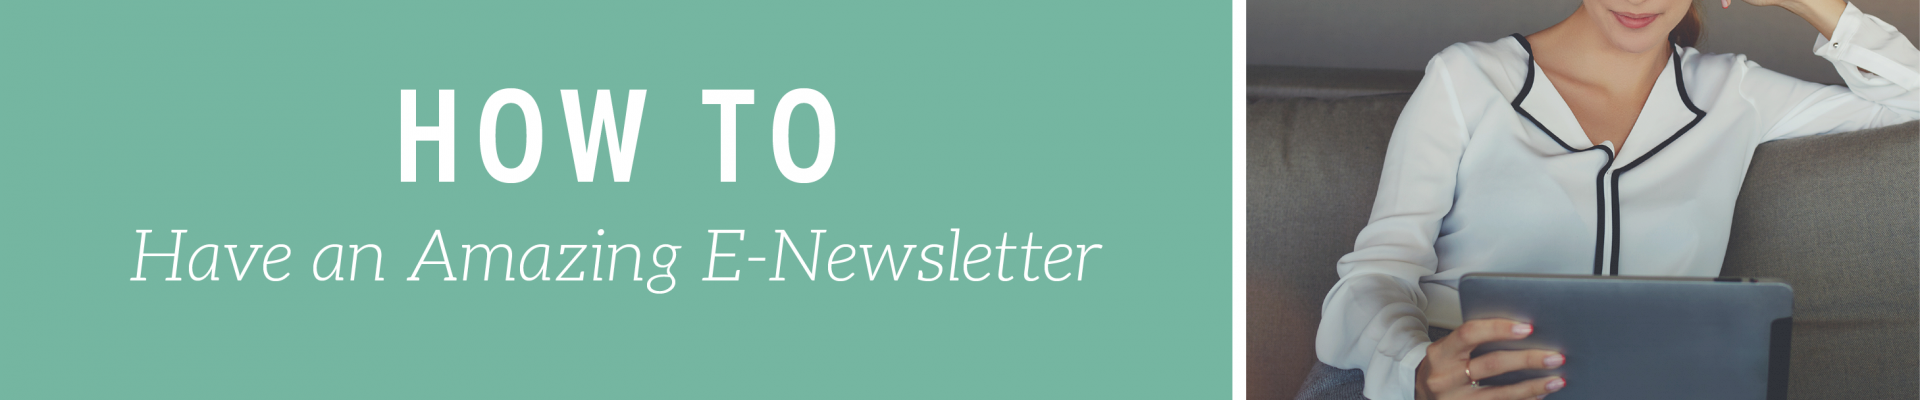 How to Have an Amazing E-Newsletter